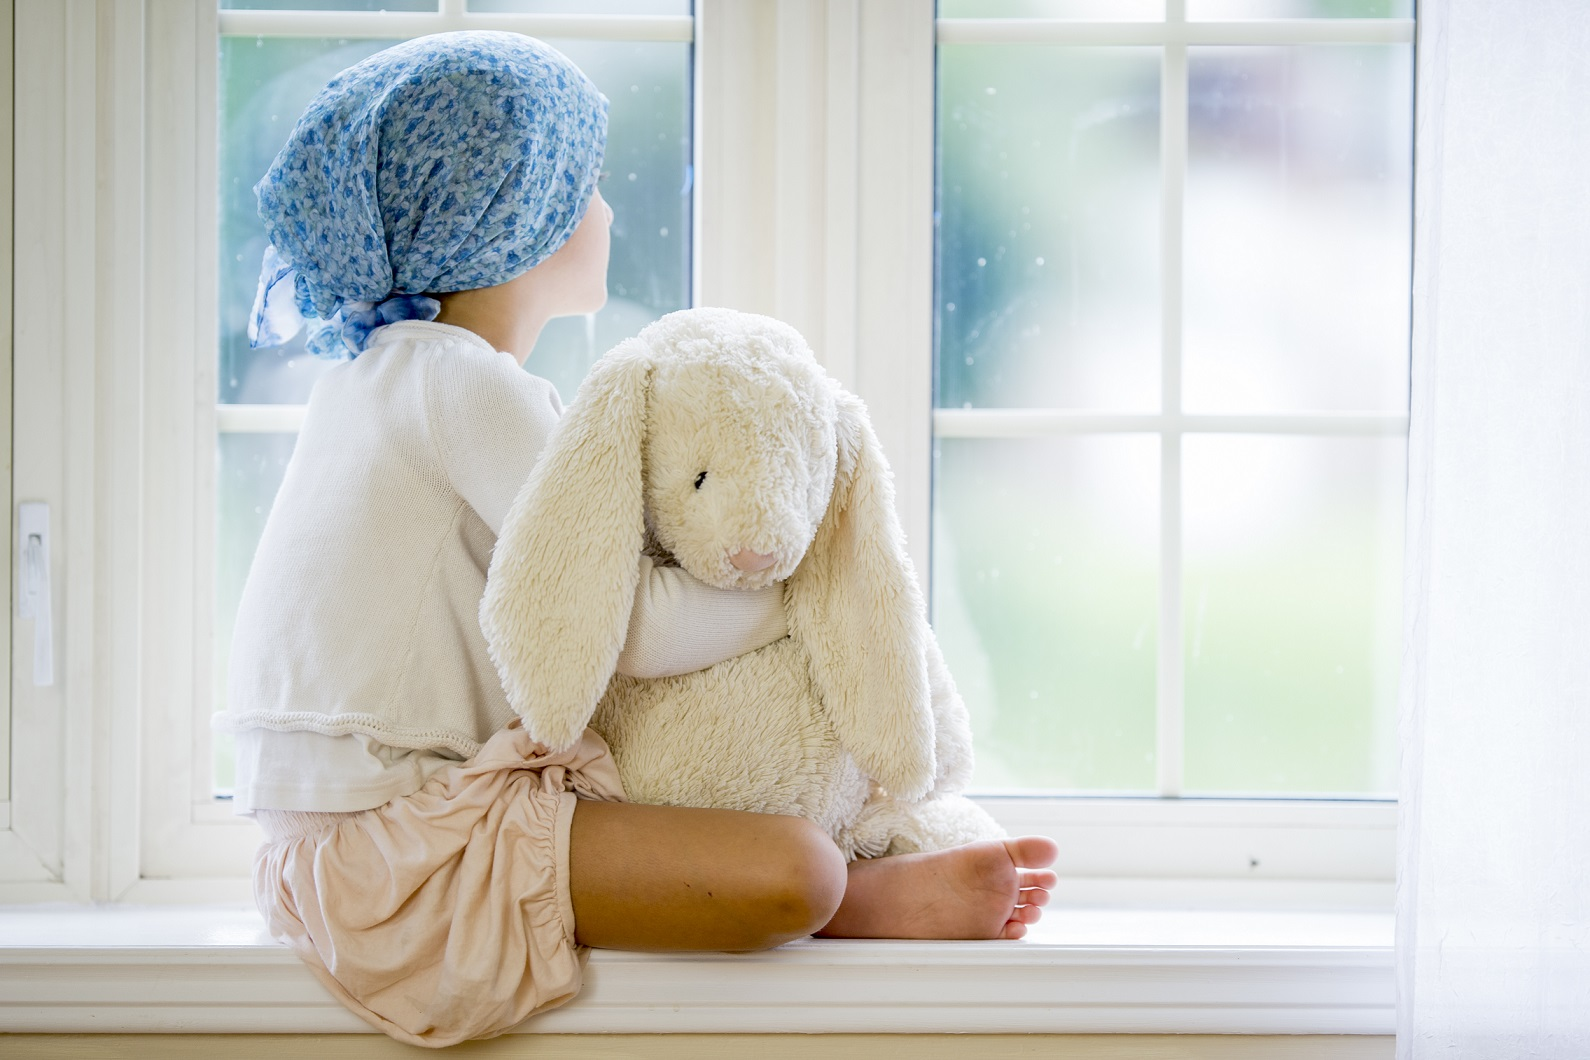 child with cancer looking out window